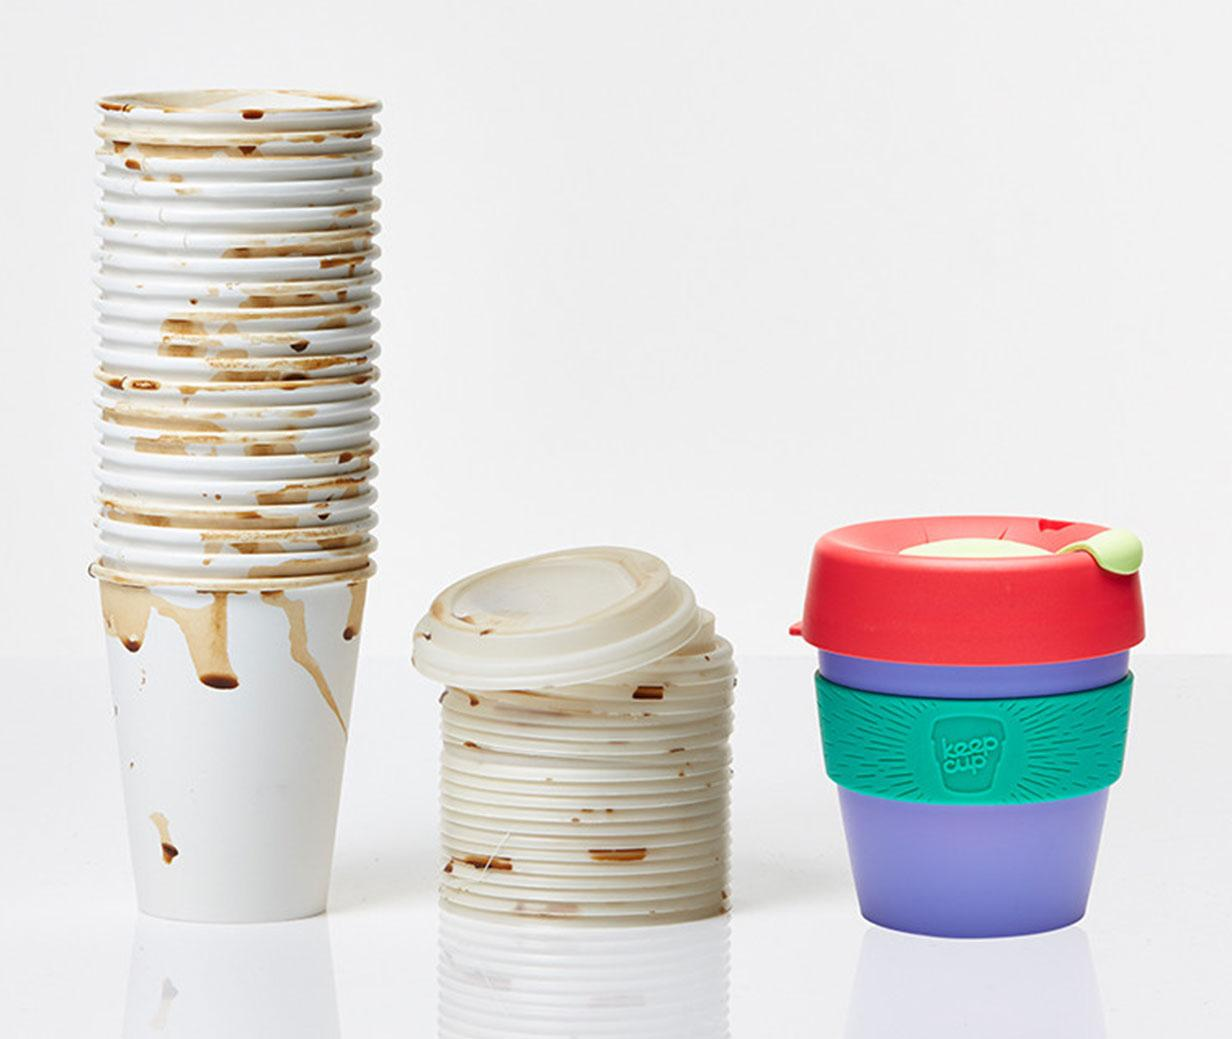 Is plastic really that bad?